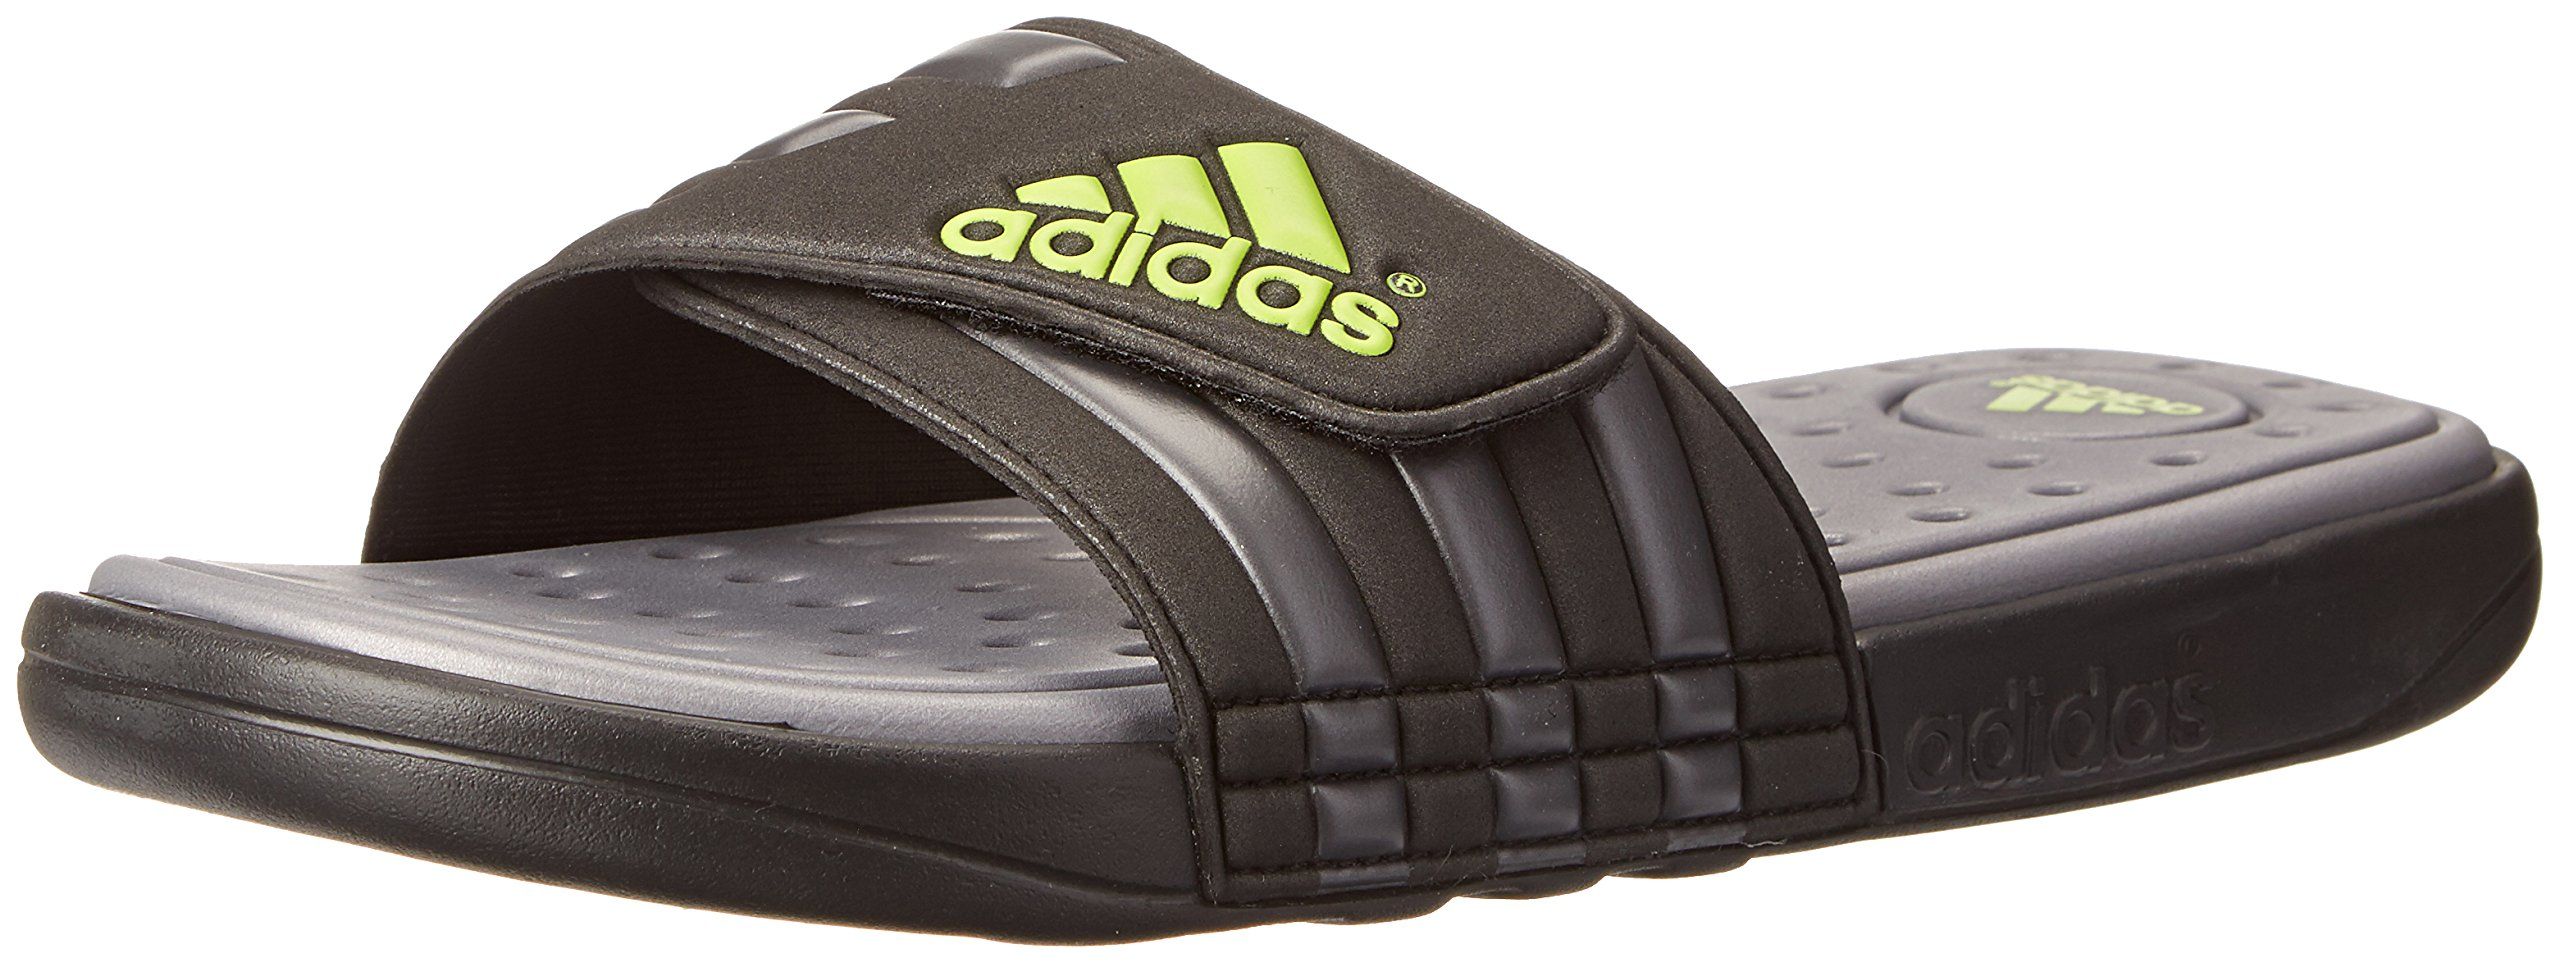 adidas Performance Men's adissage SC Sandal,Black/Grey/Green,6 M US by adidas